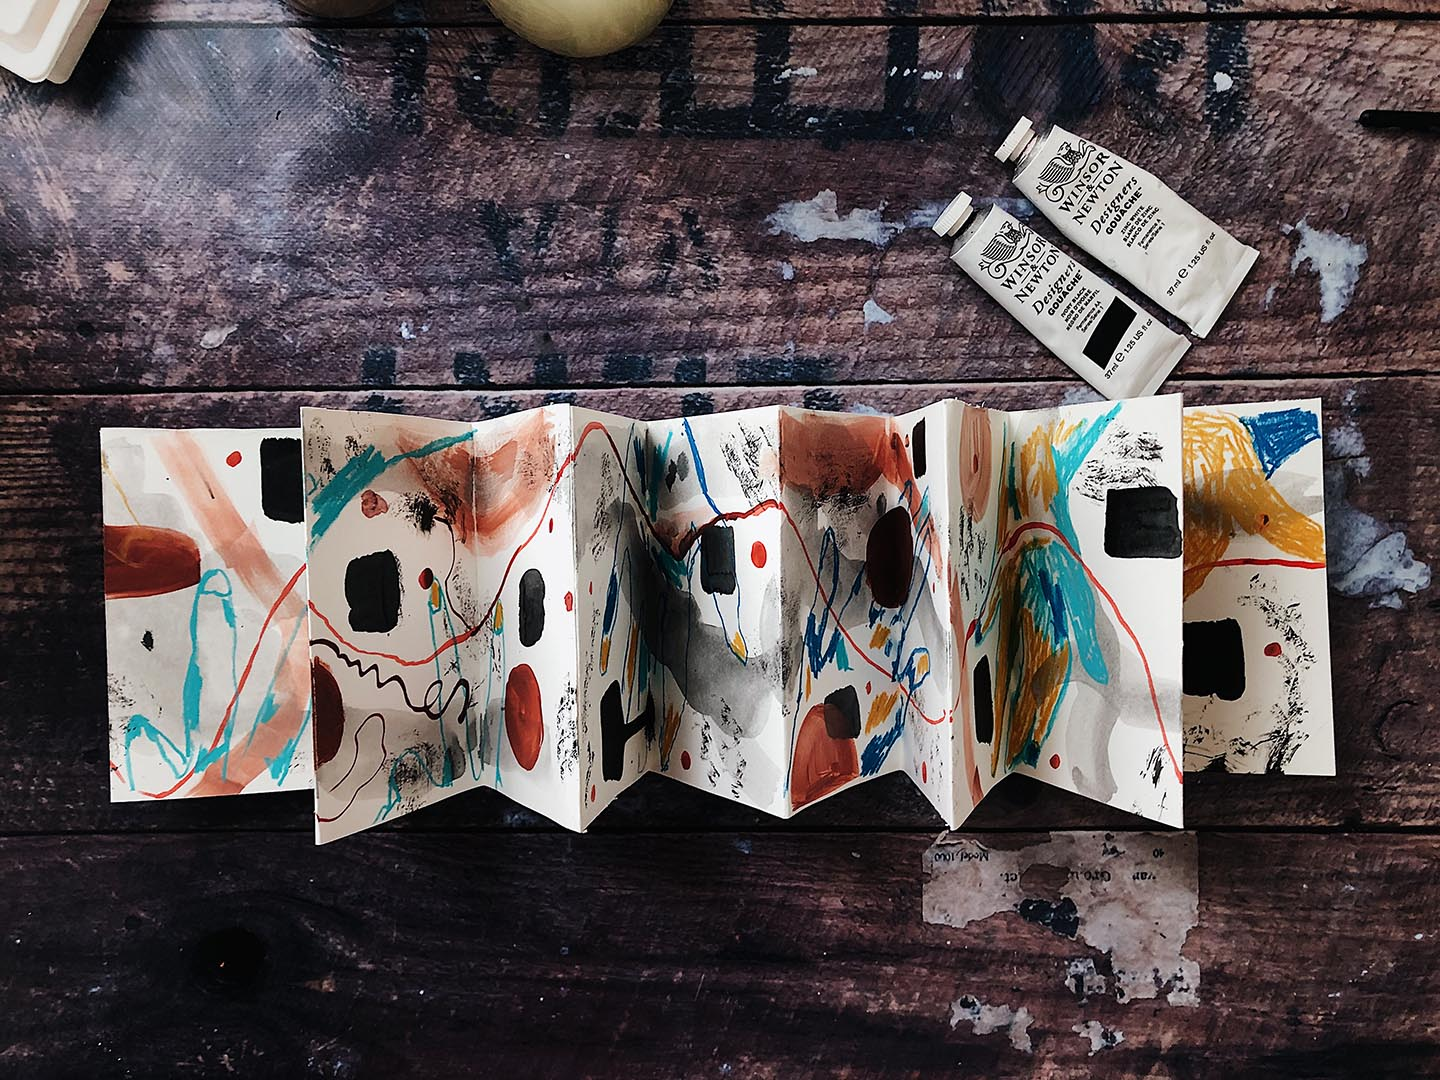 Accordion book on wooden table depicting abstract art